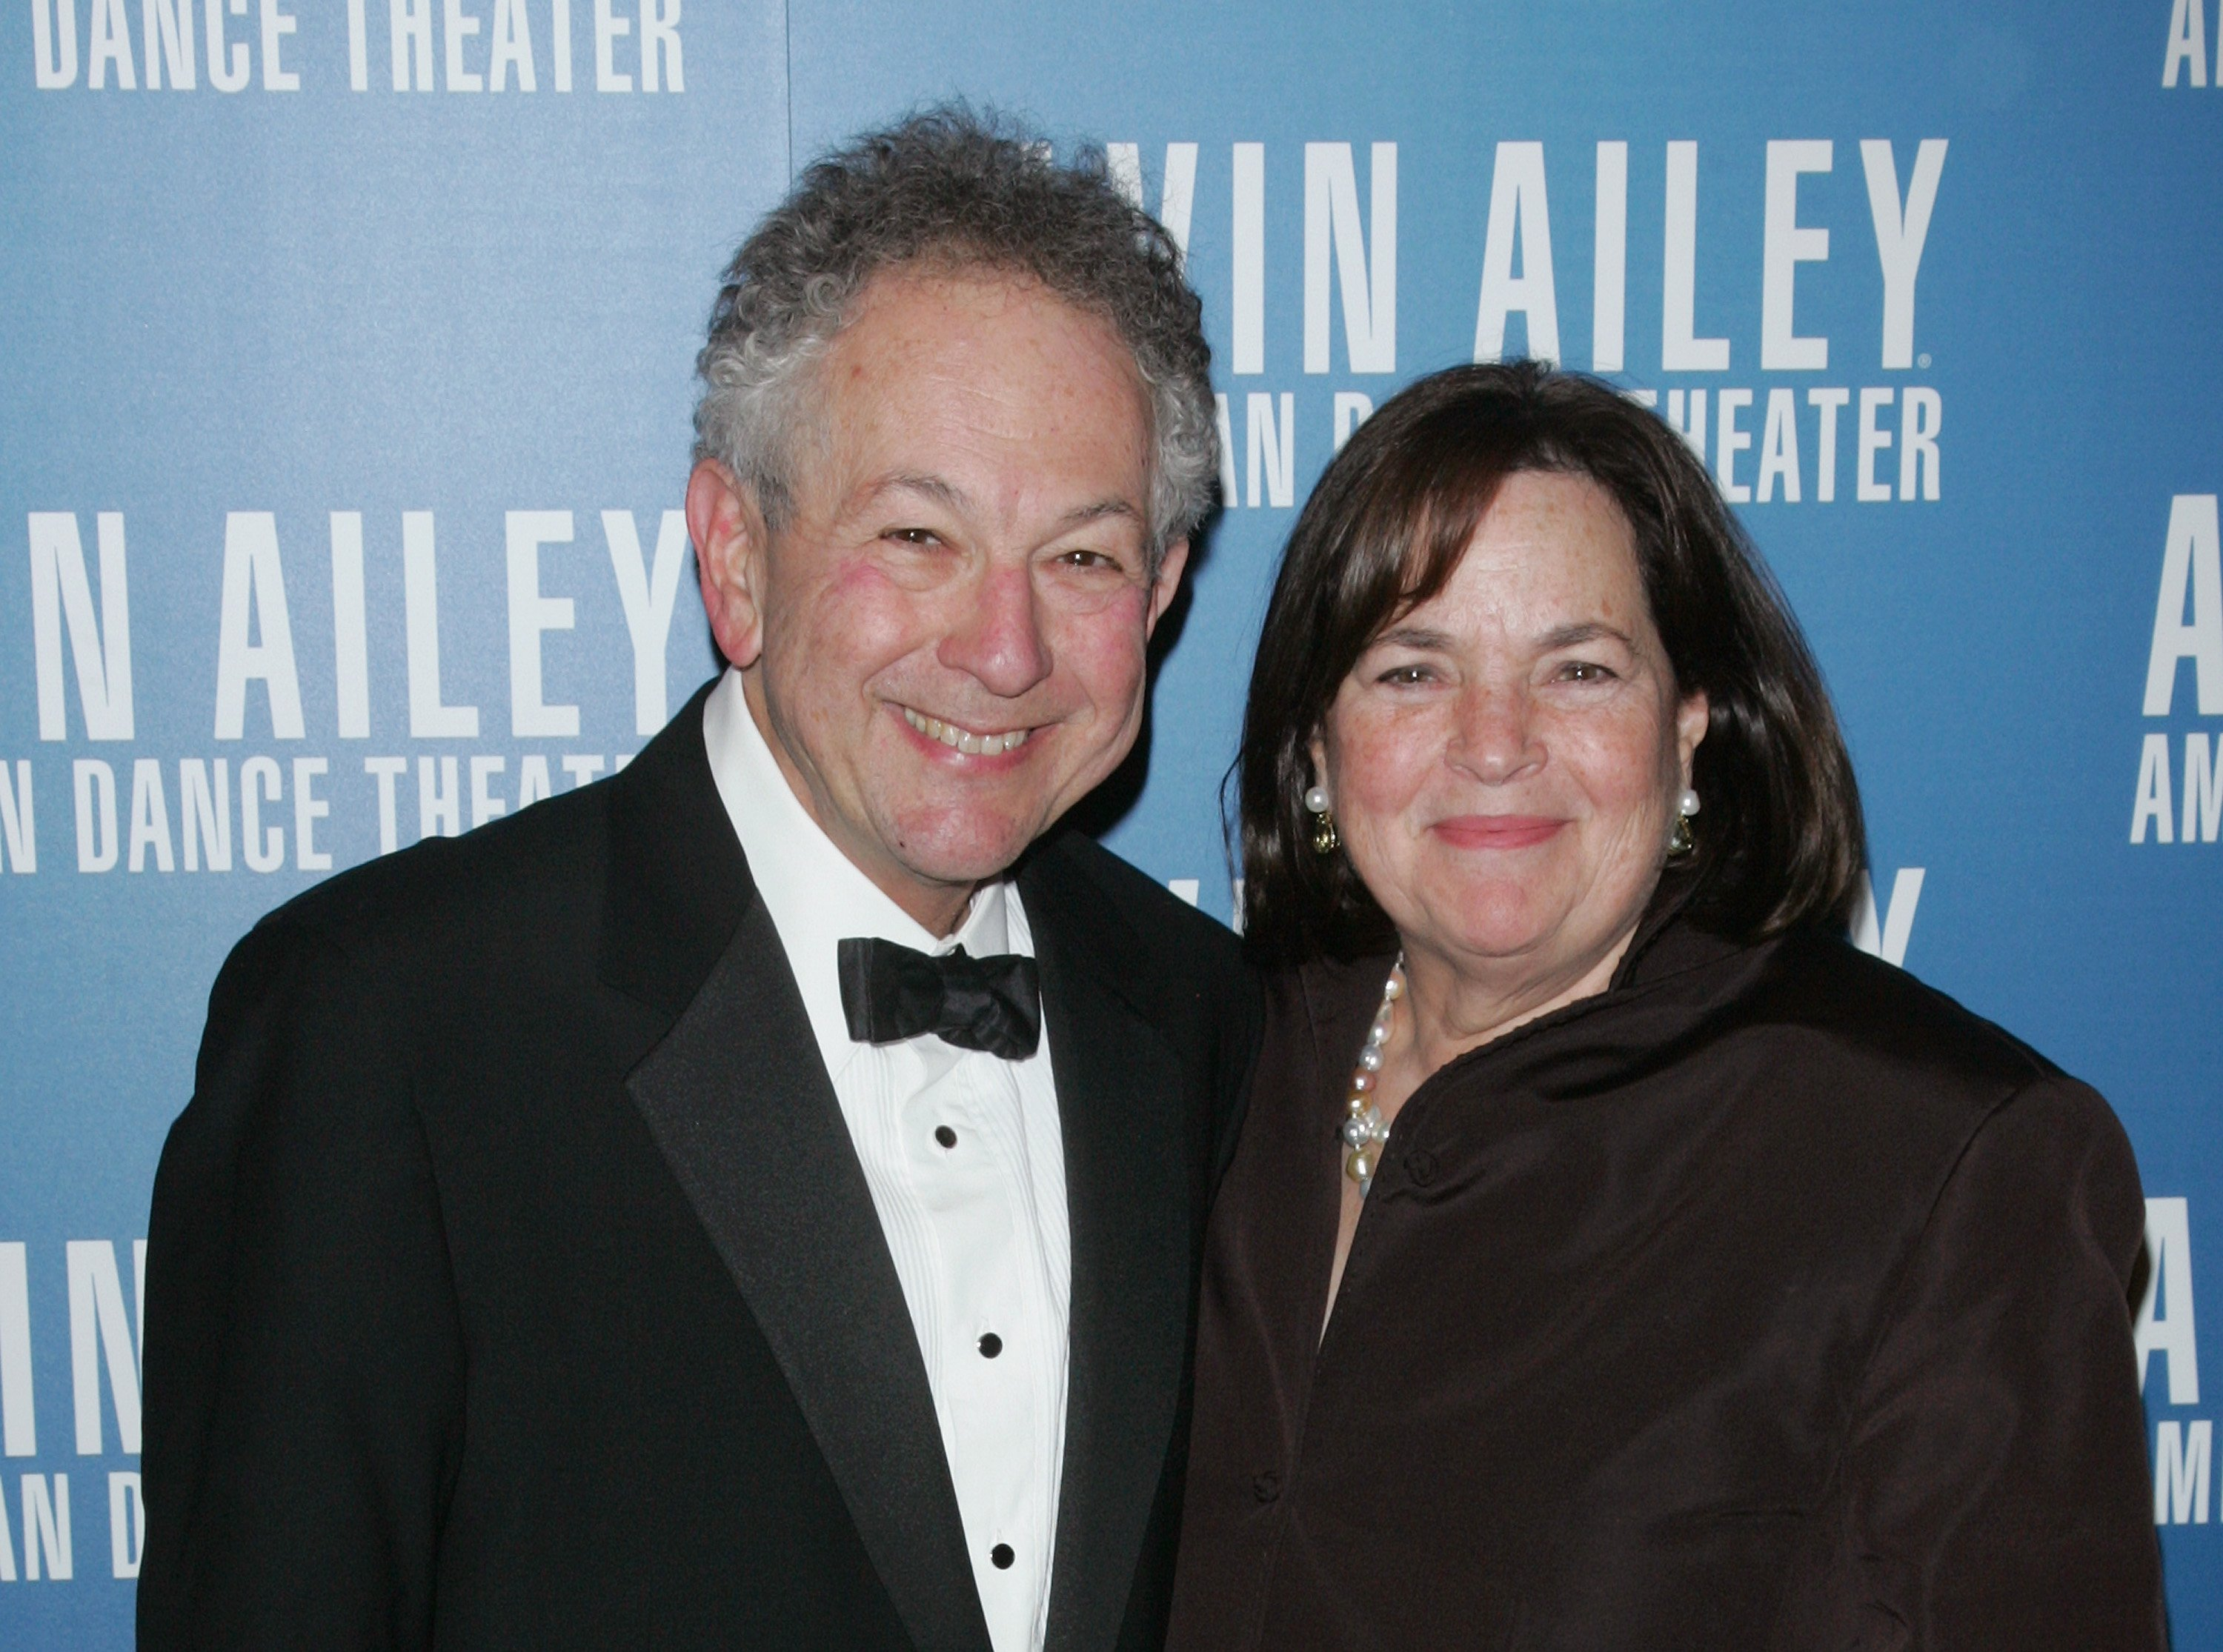 Jeffrey and Ina Garten attends the Alvin Ailey American Dance Theater Opening Night Gala on November 28, 2012, in New York City. | Source: Getty Images.